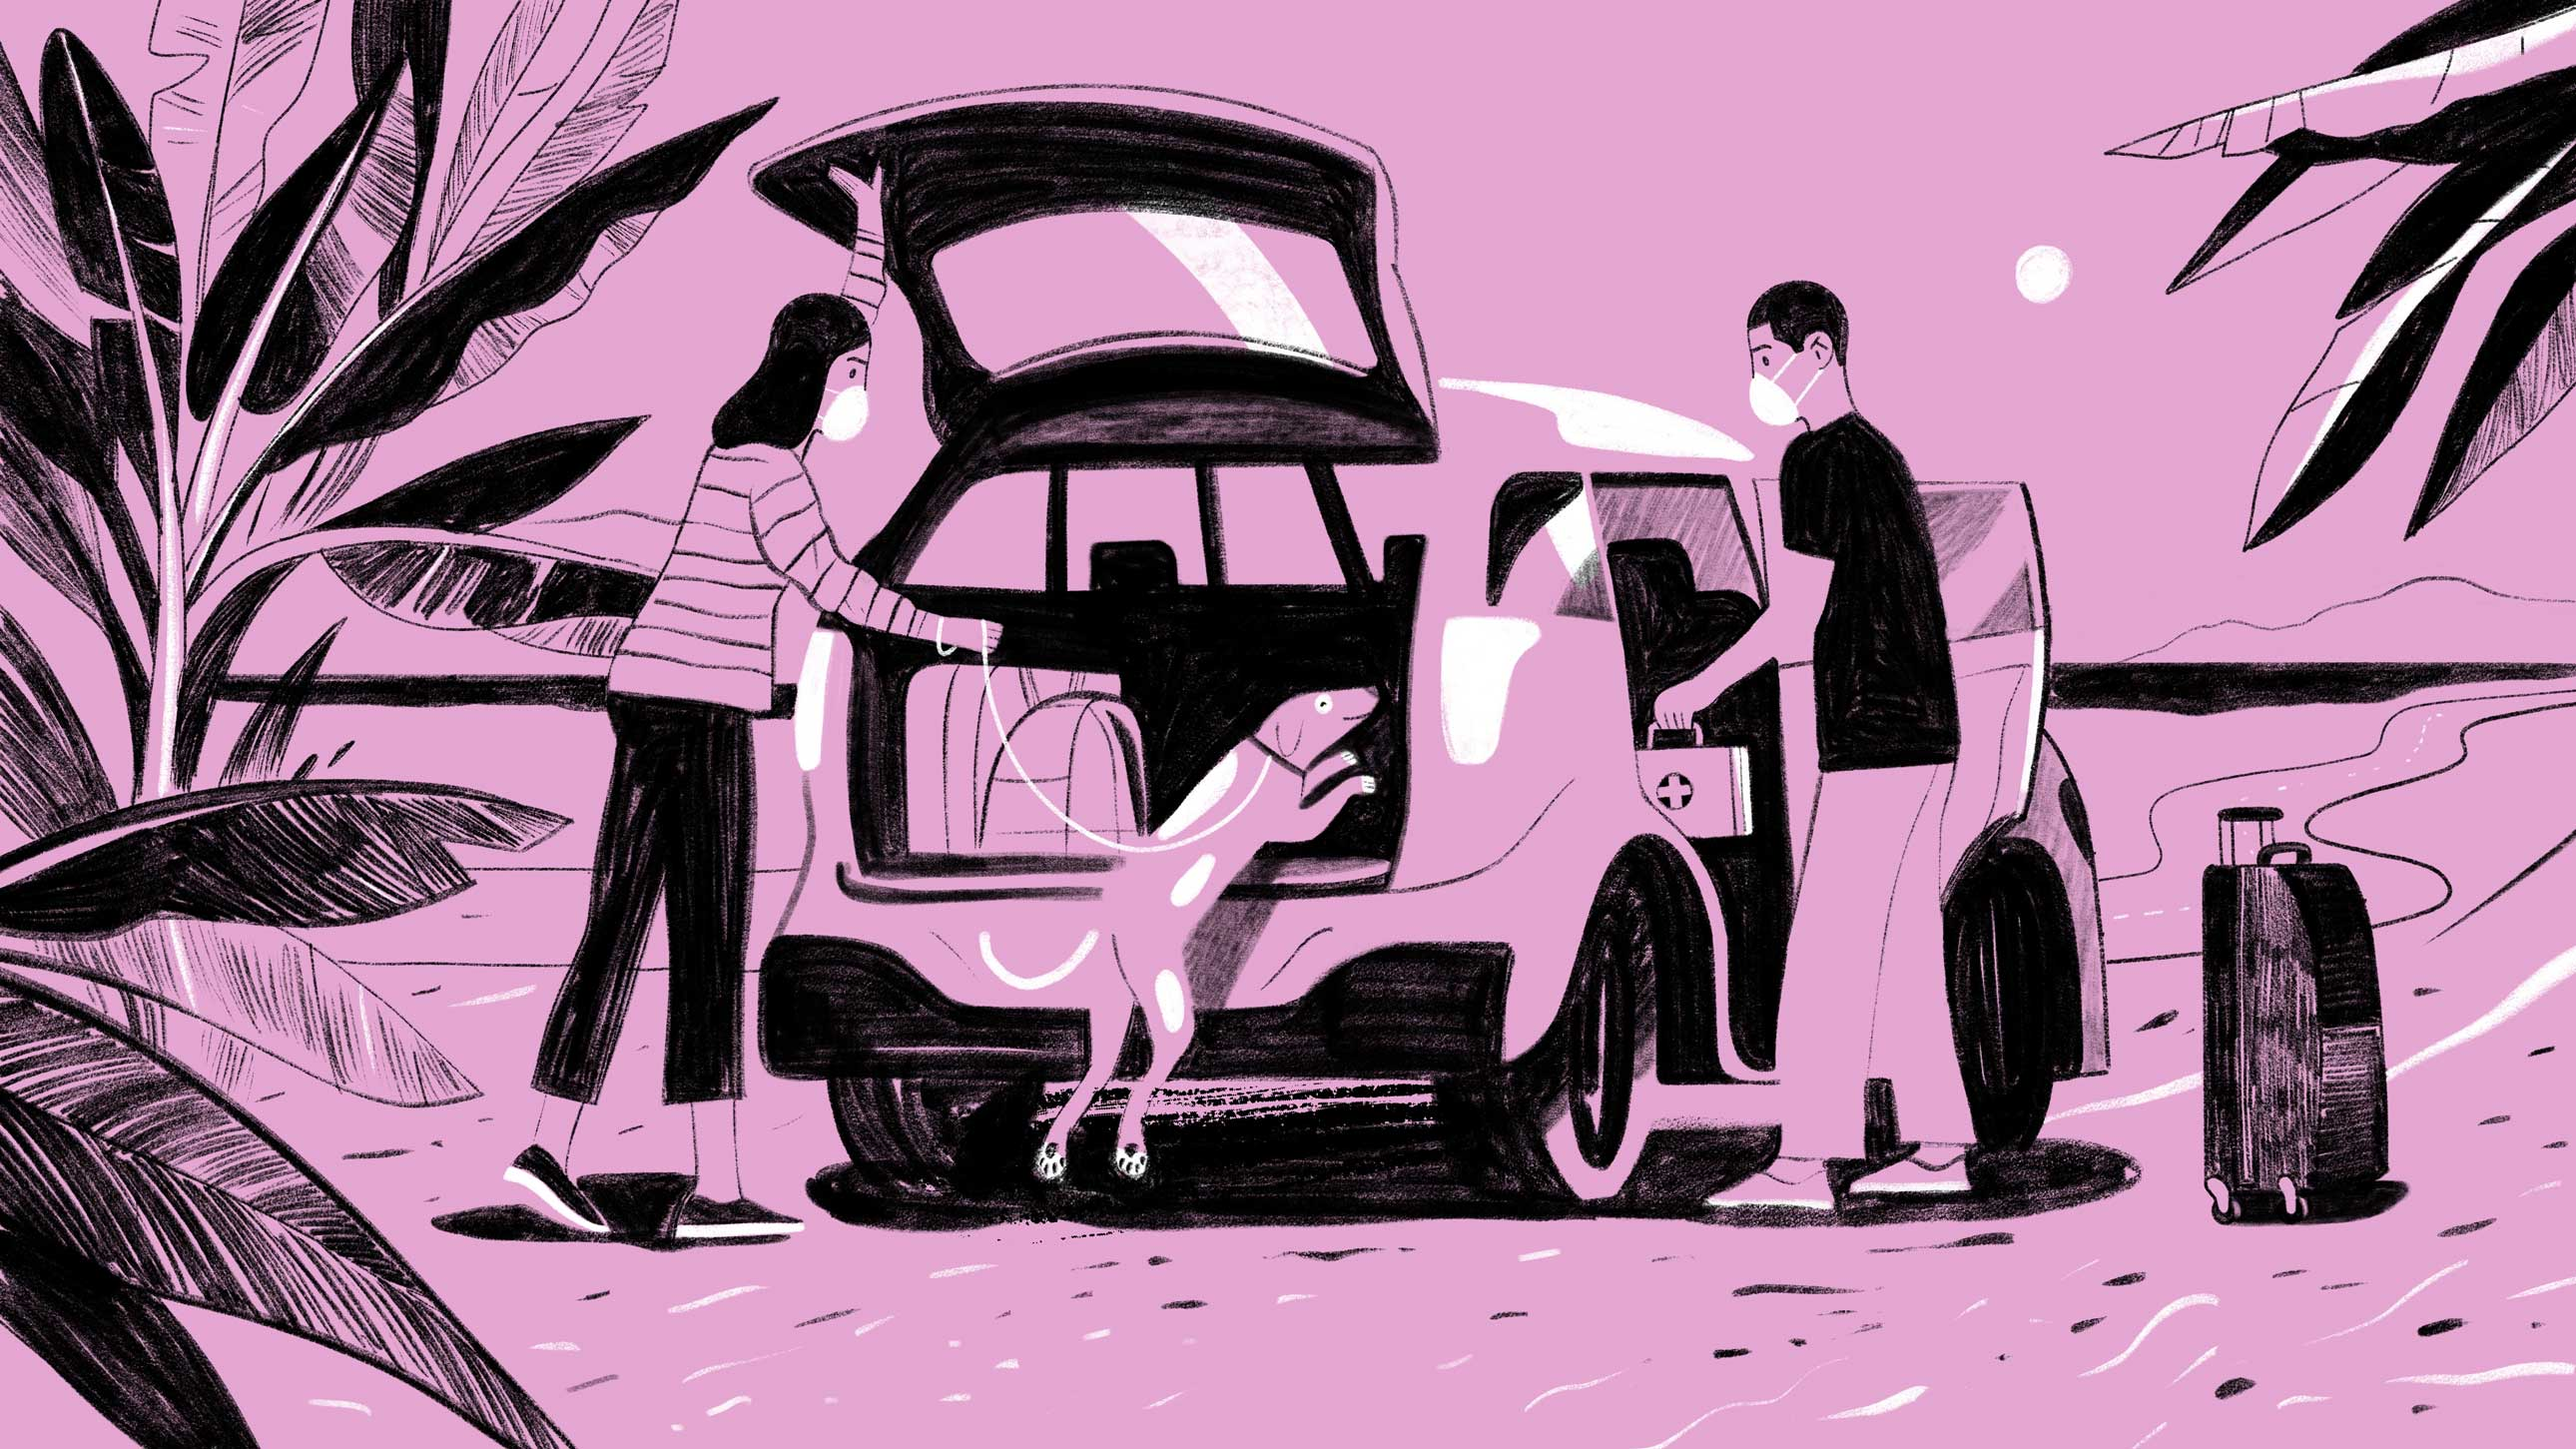 An illustration of a man and a woman wearing medical masks. They are putting luggage and a first aid kit into their car, as their dog jumps into the back of the open tailgate.